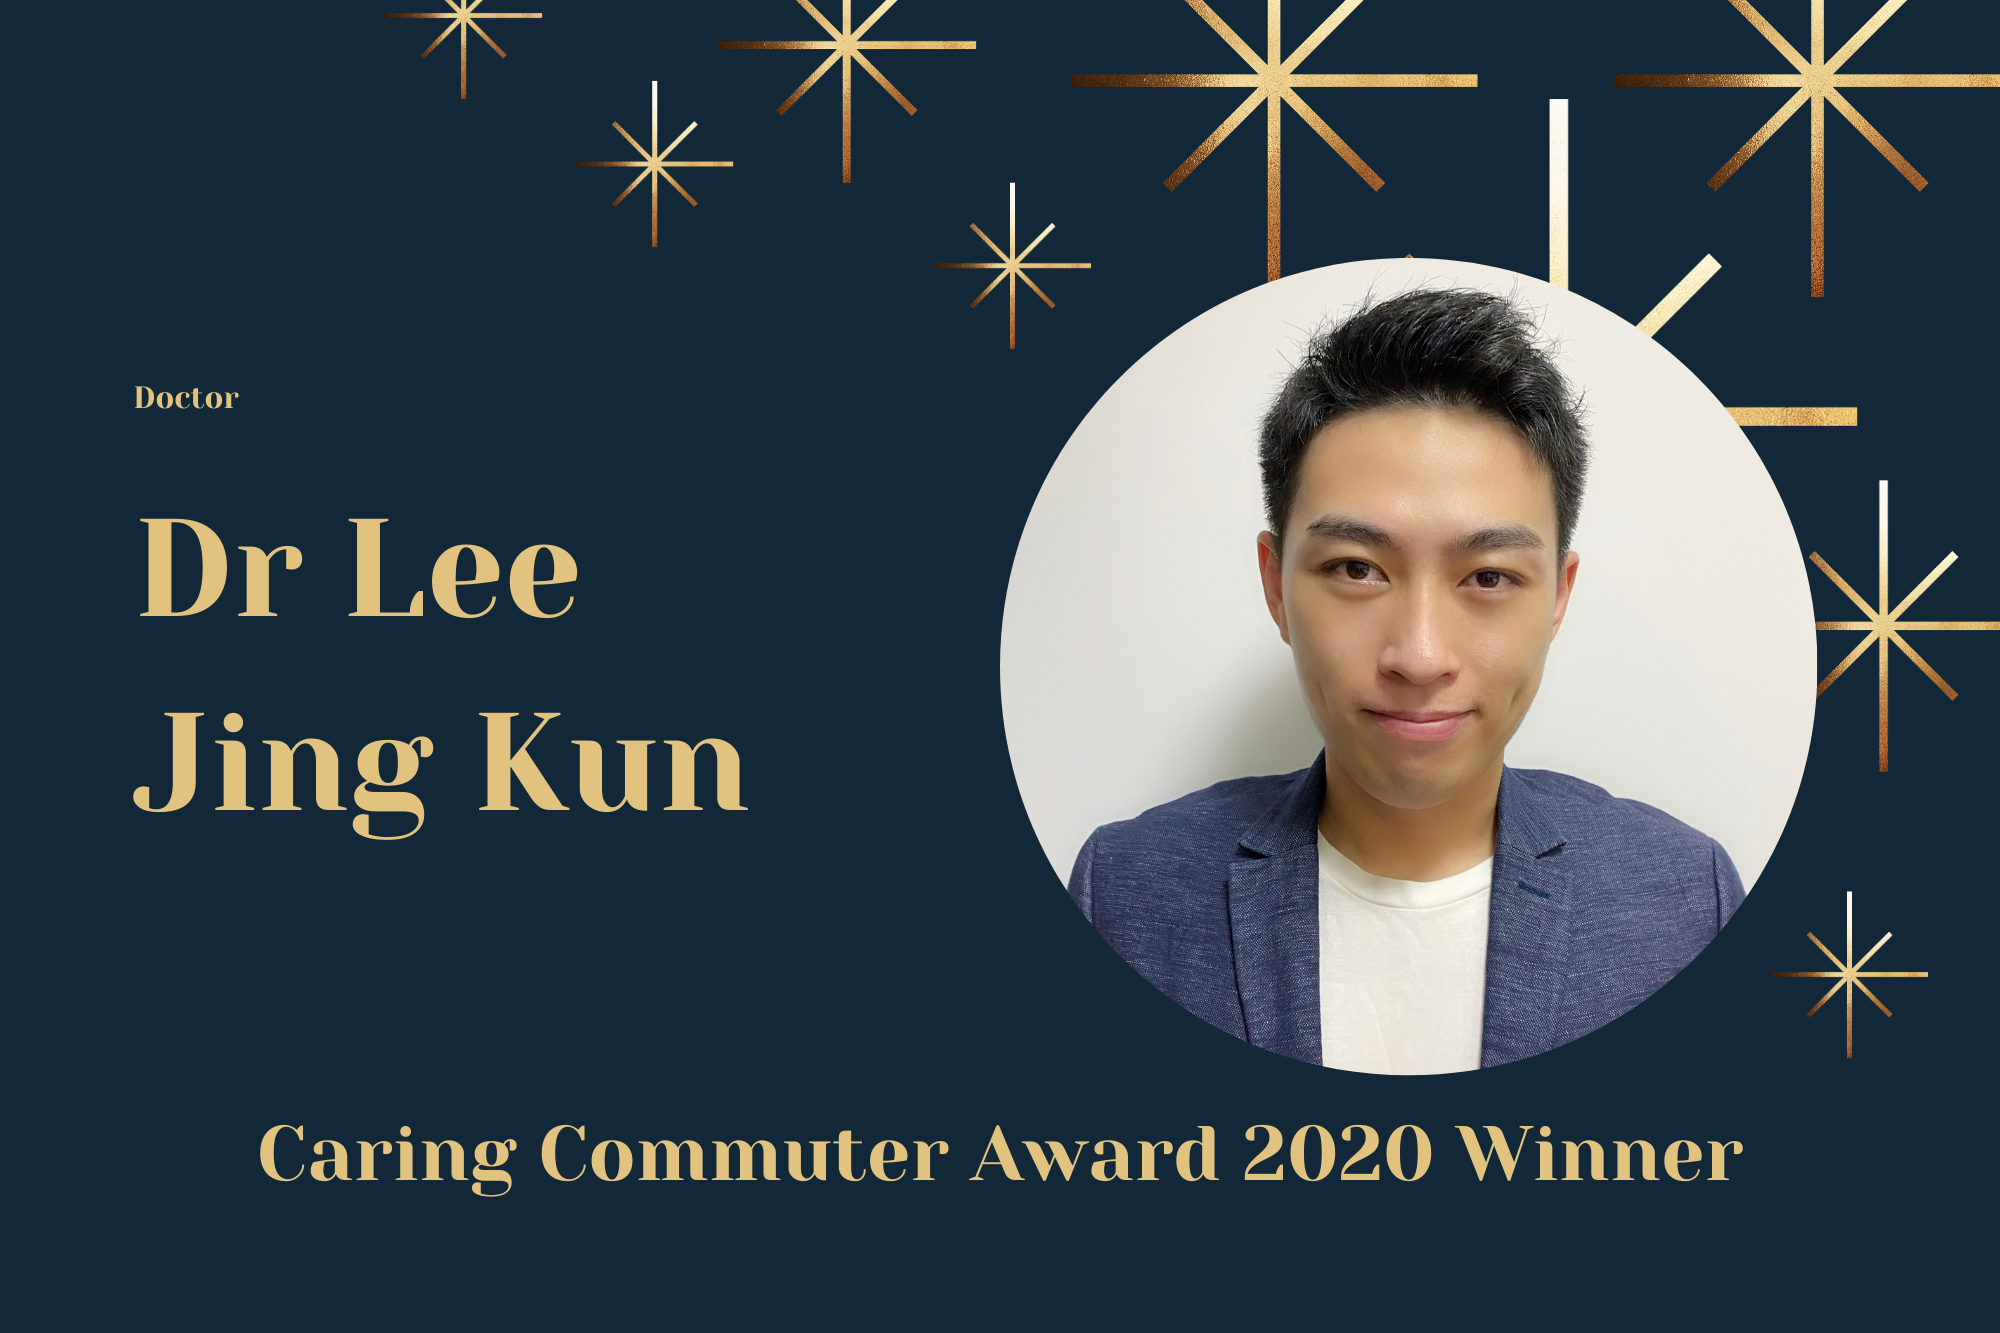 Meet Dr Lee, Doctor and Caring Commuter Award 2020 Winner